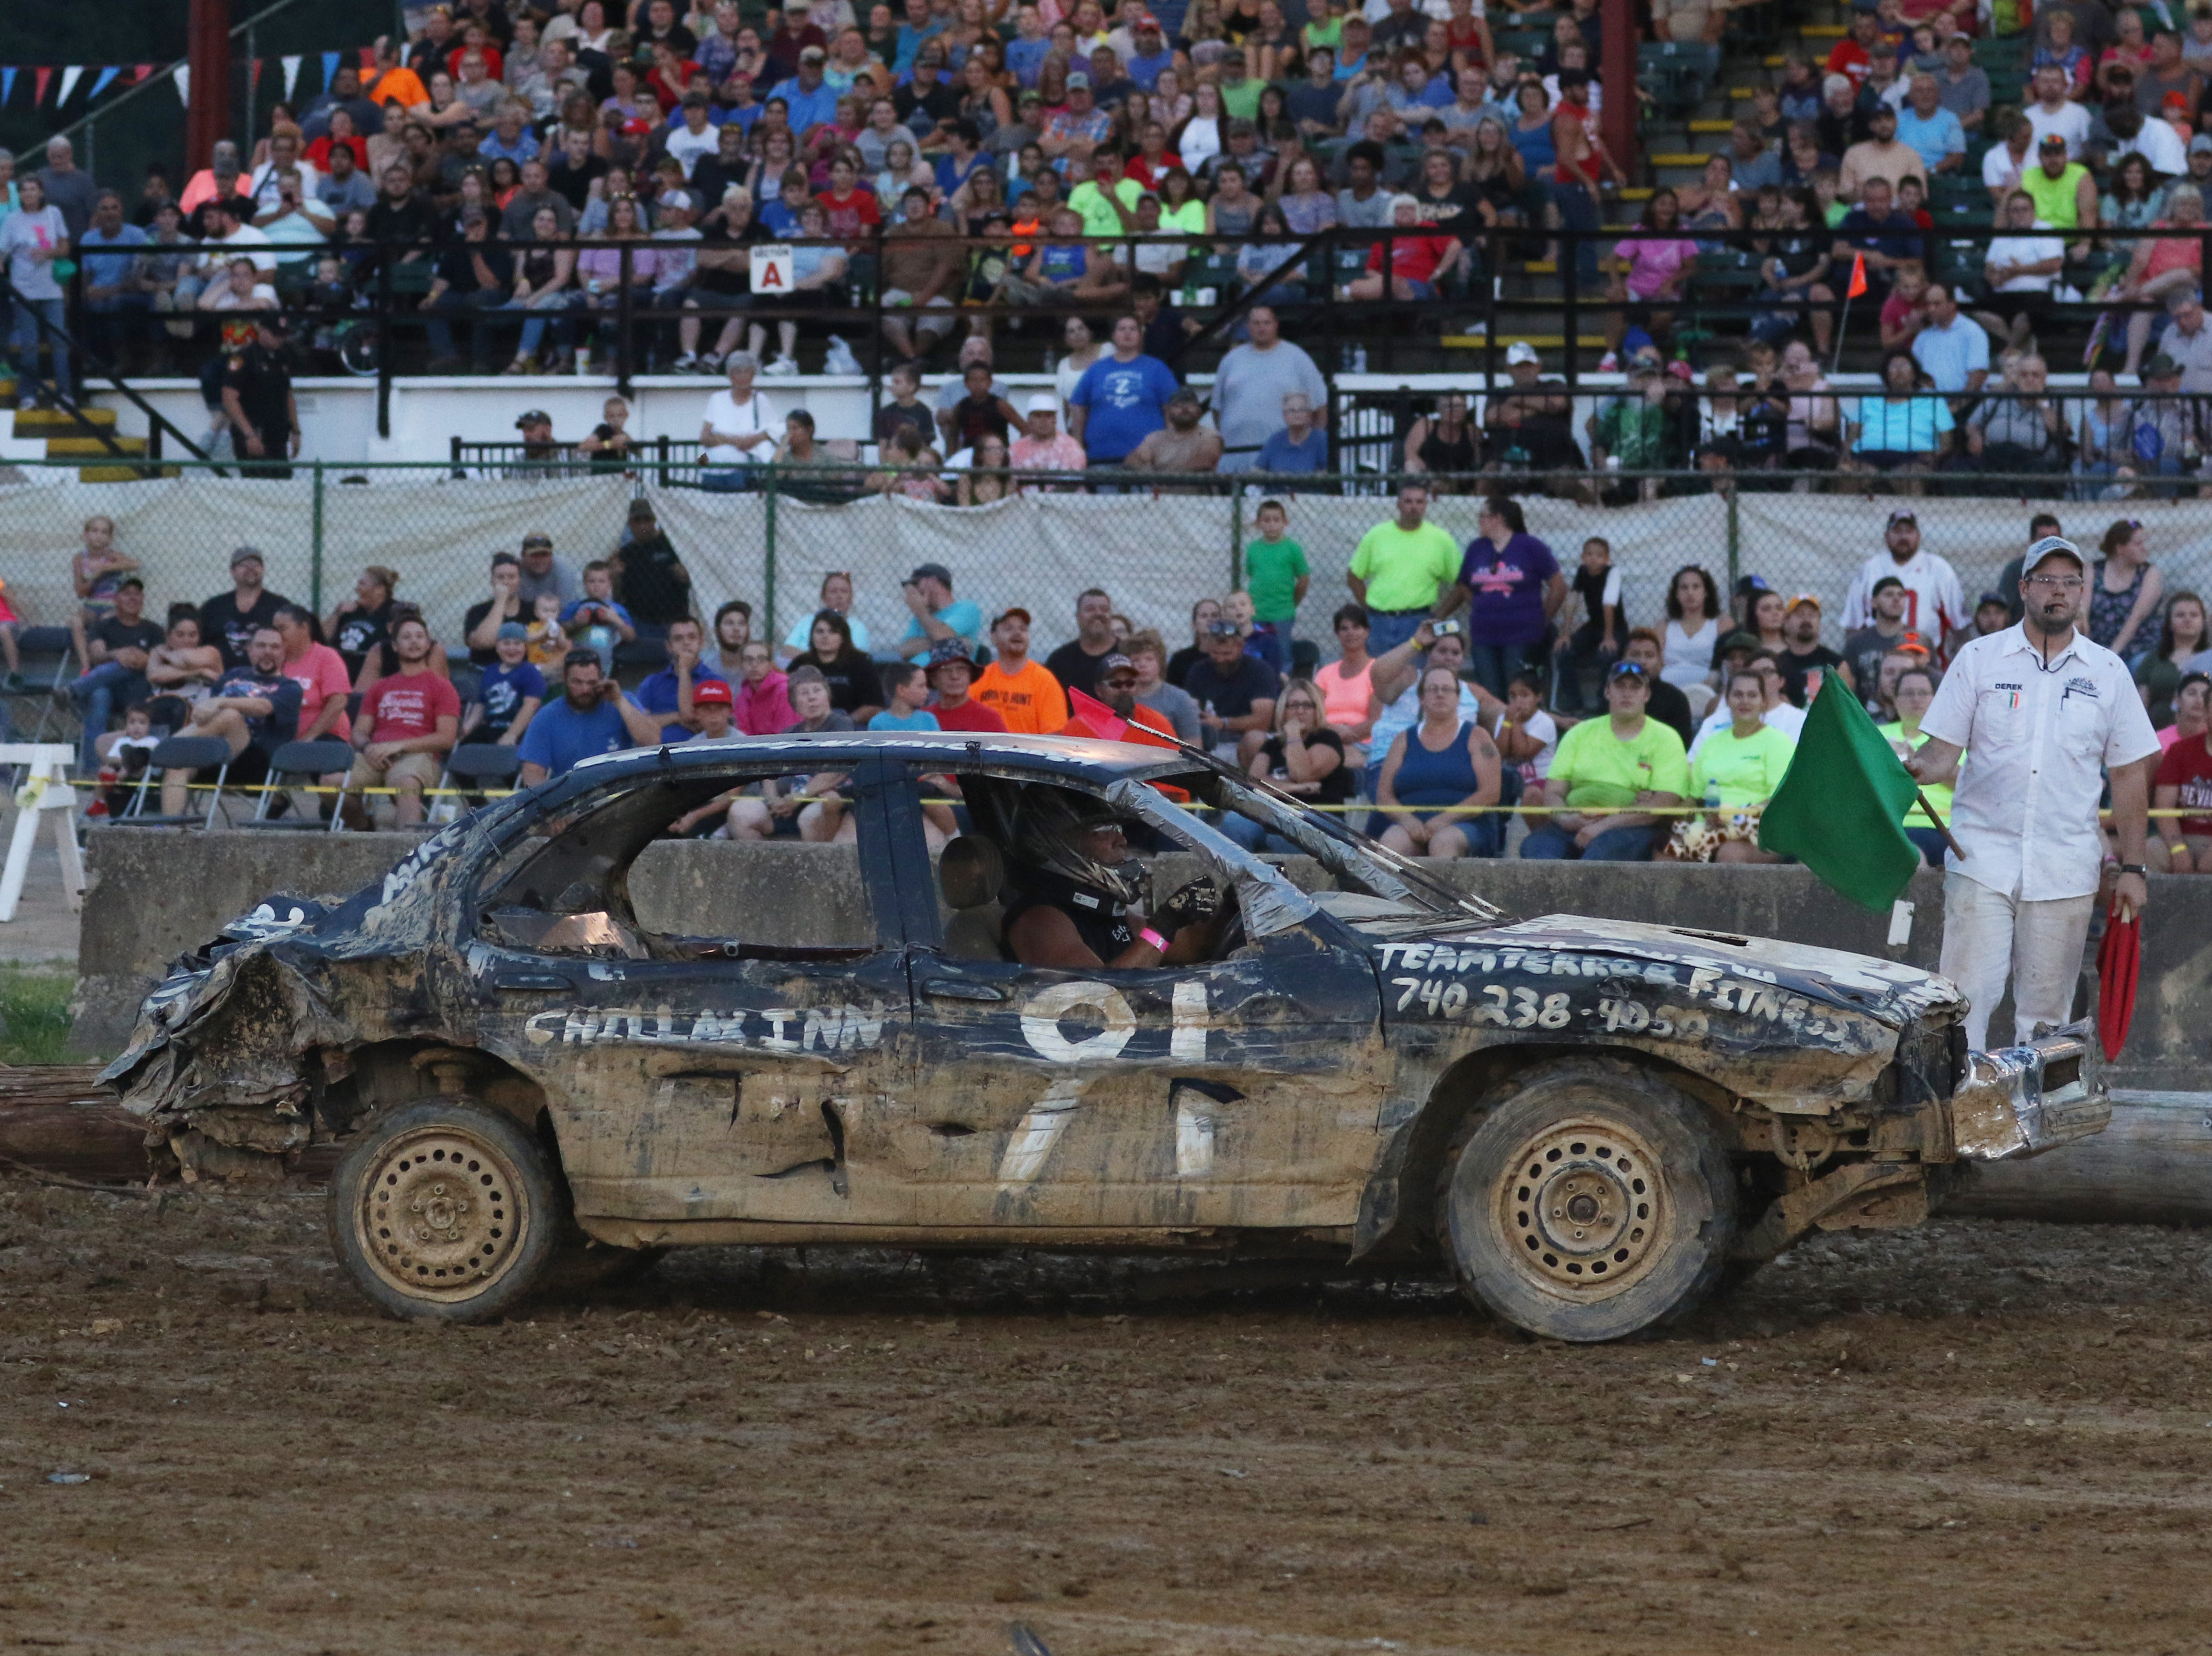 Doug Fisher looks for someone to hit during the Sarge and Sons Demolition Derby at the Muskingum County Fair on Tuesday.